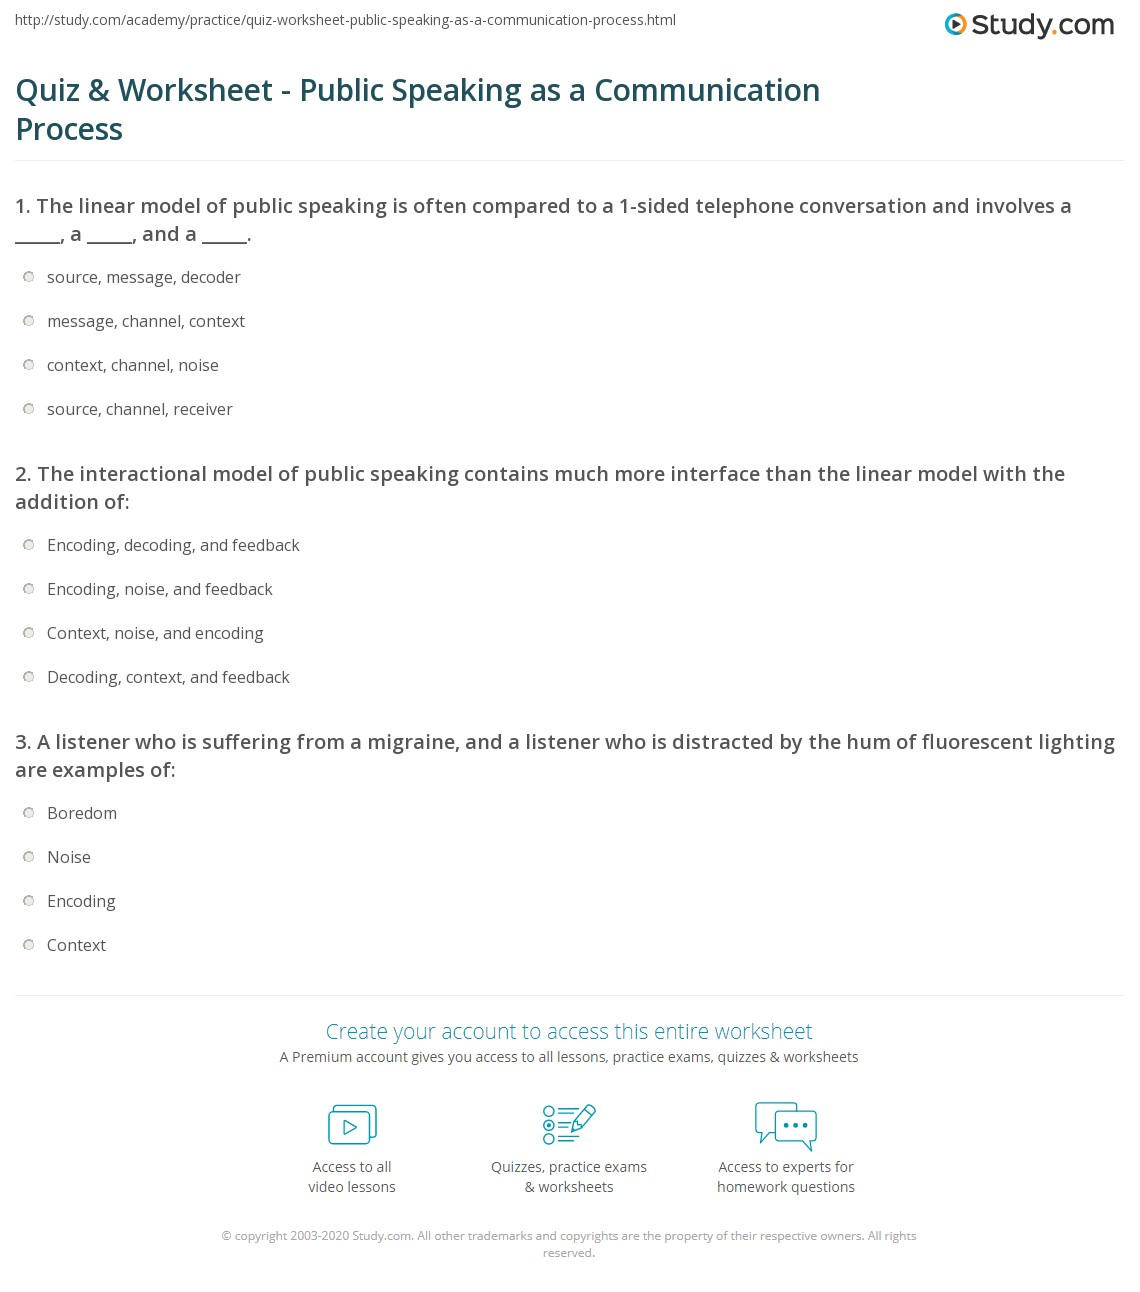 Printables Public Speaking Worksheets quiz worksheet public speaking as a communication process print worksheet